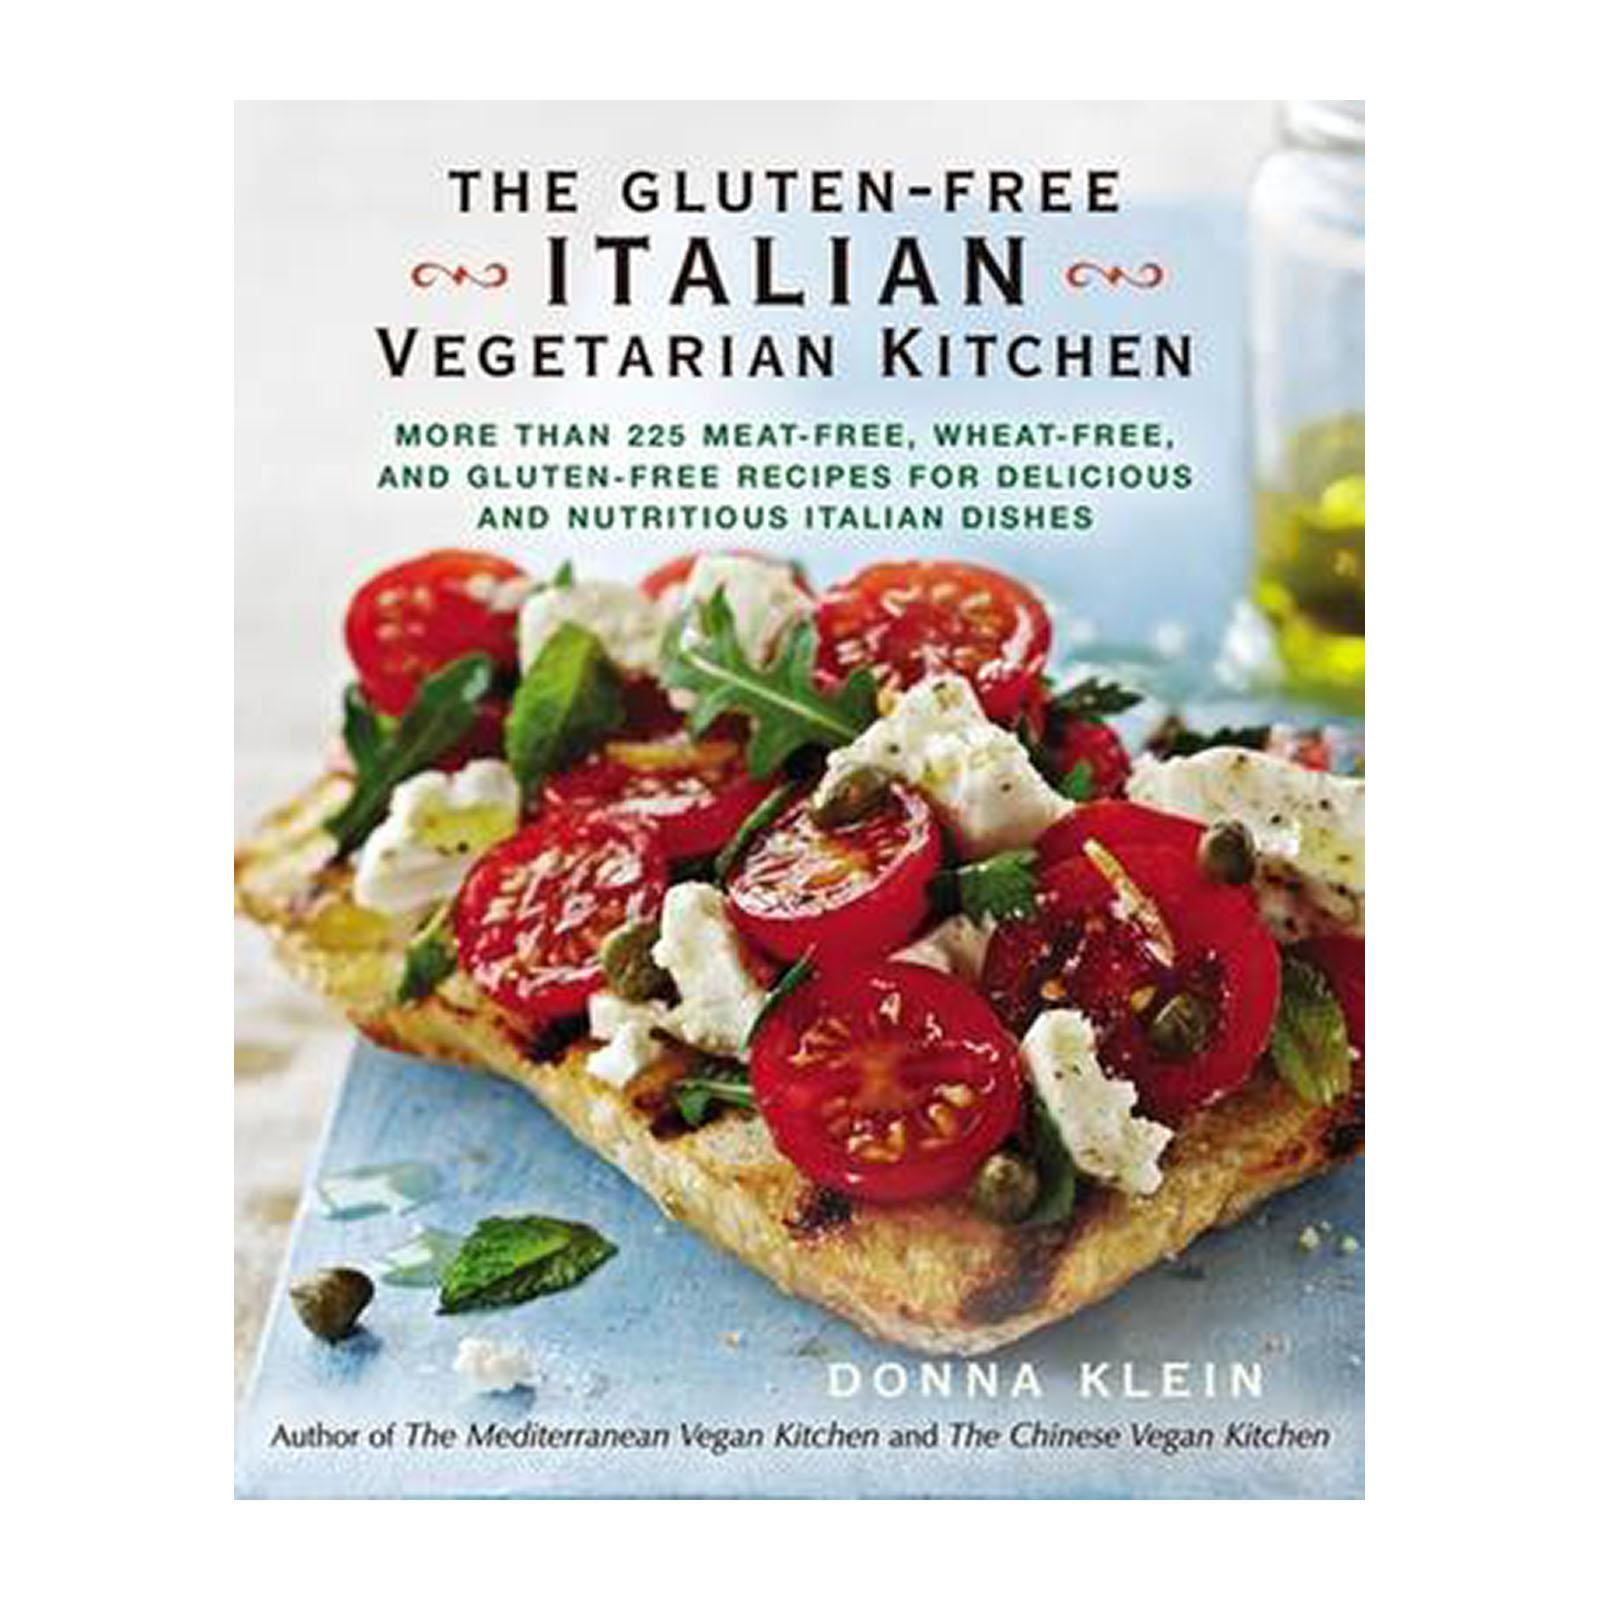 The Gluten-Free Italian Vegetarian Kitchen: More Than 225 Meat-Free And Wheat-Free And And Gluten-Free Recipes For Delicious And Nutricious Italian Dishes (Paperback)